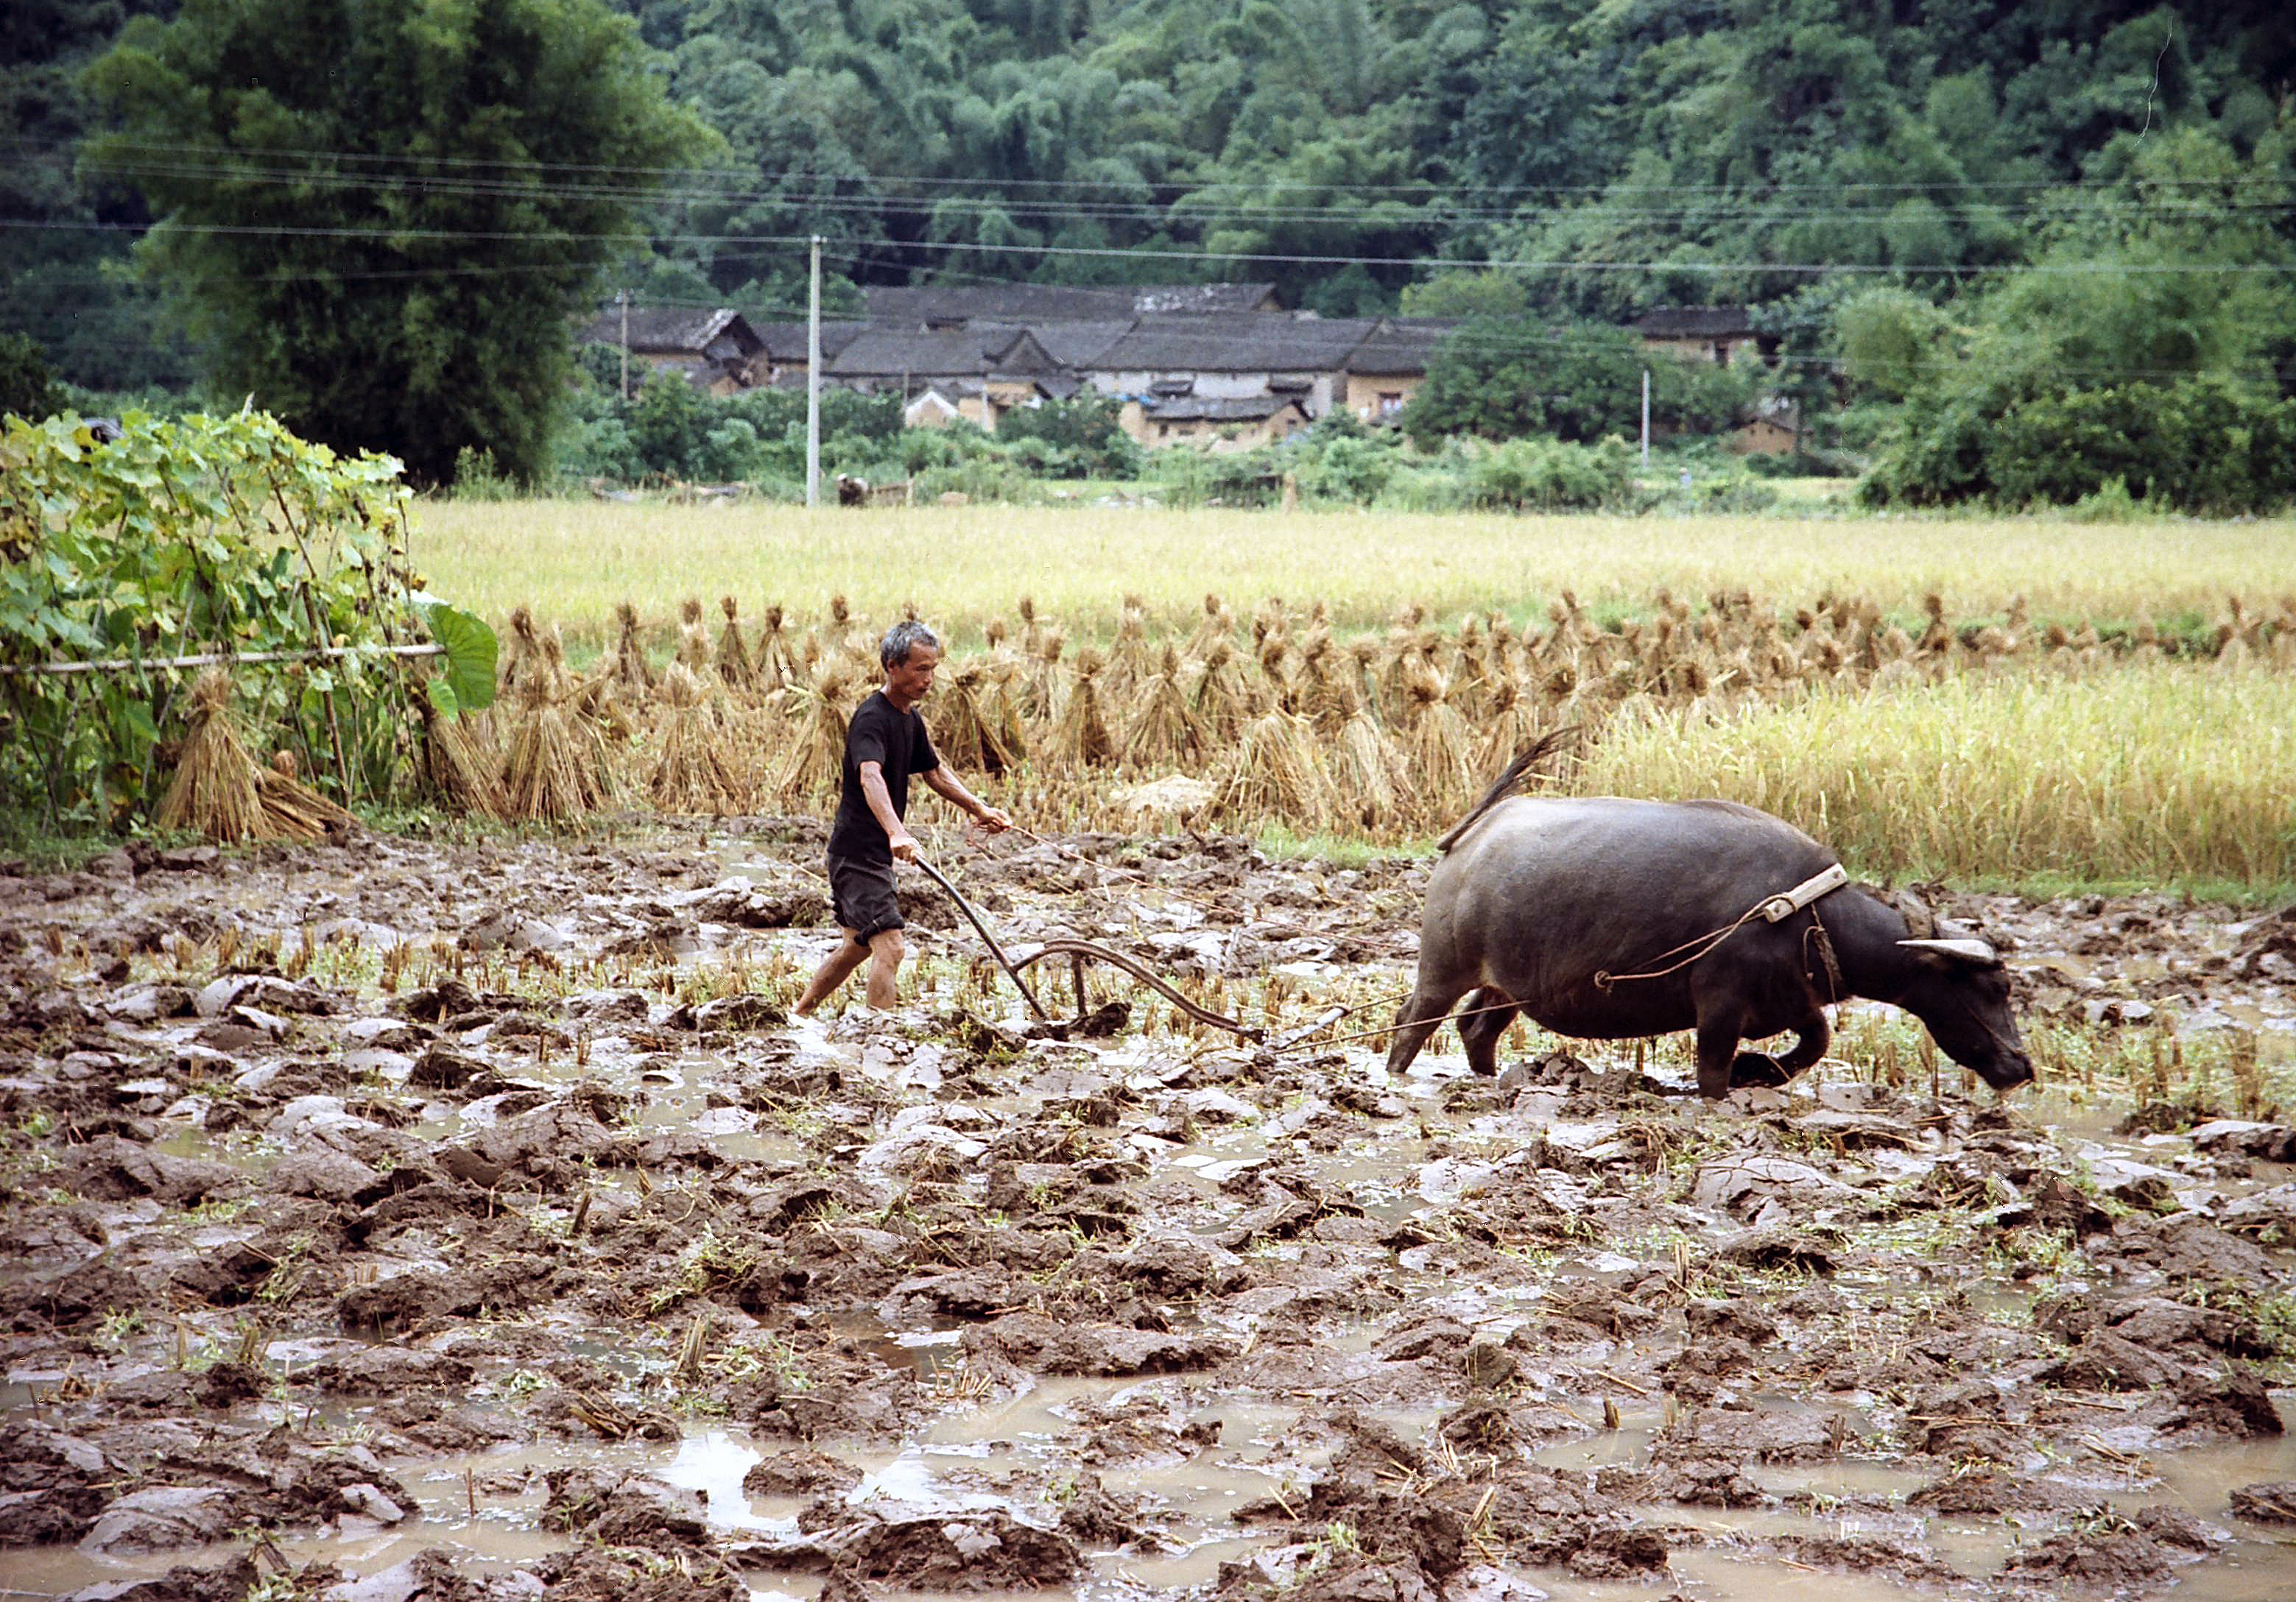 peasant ploughing with water buffalo, Guilin China.jpg